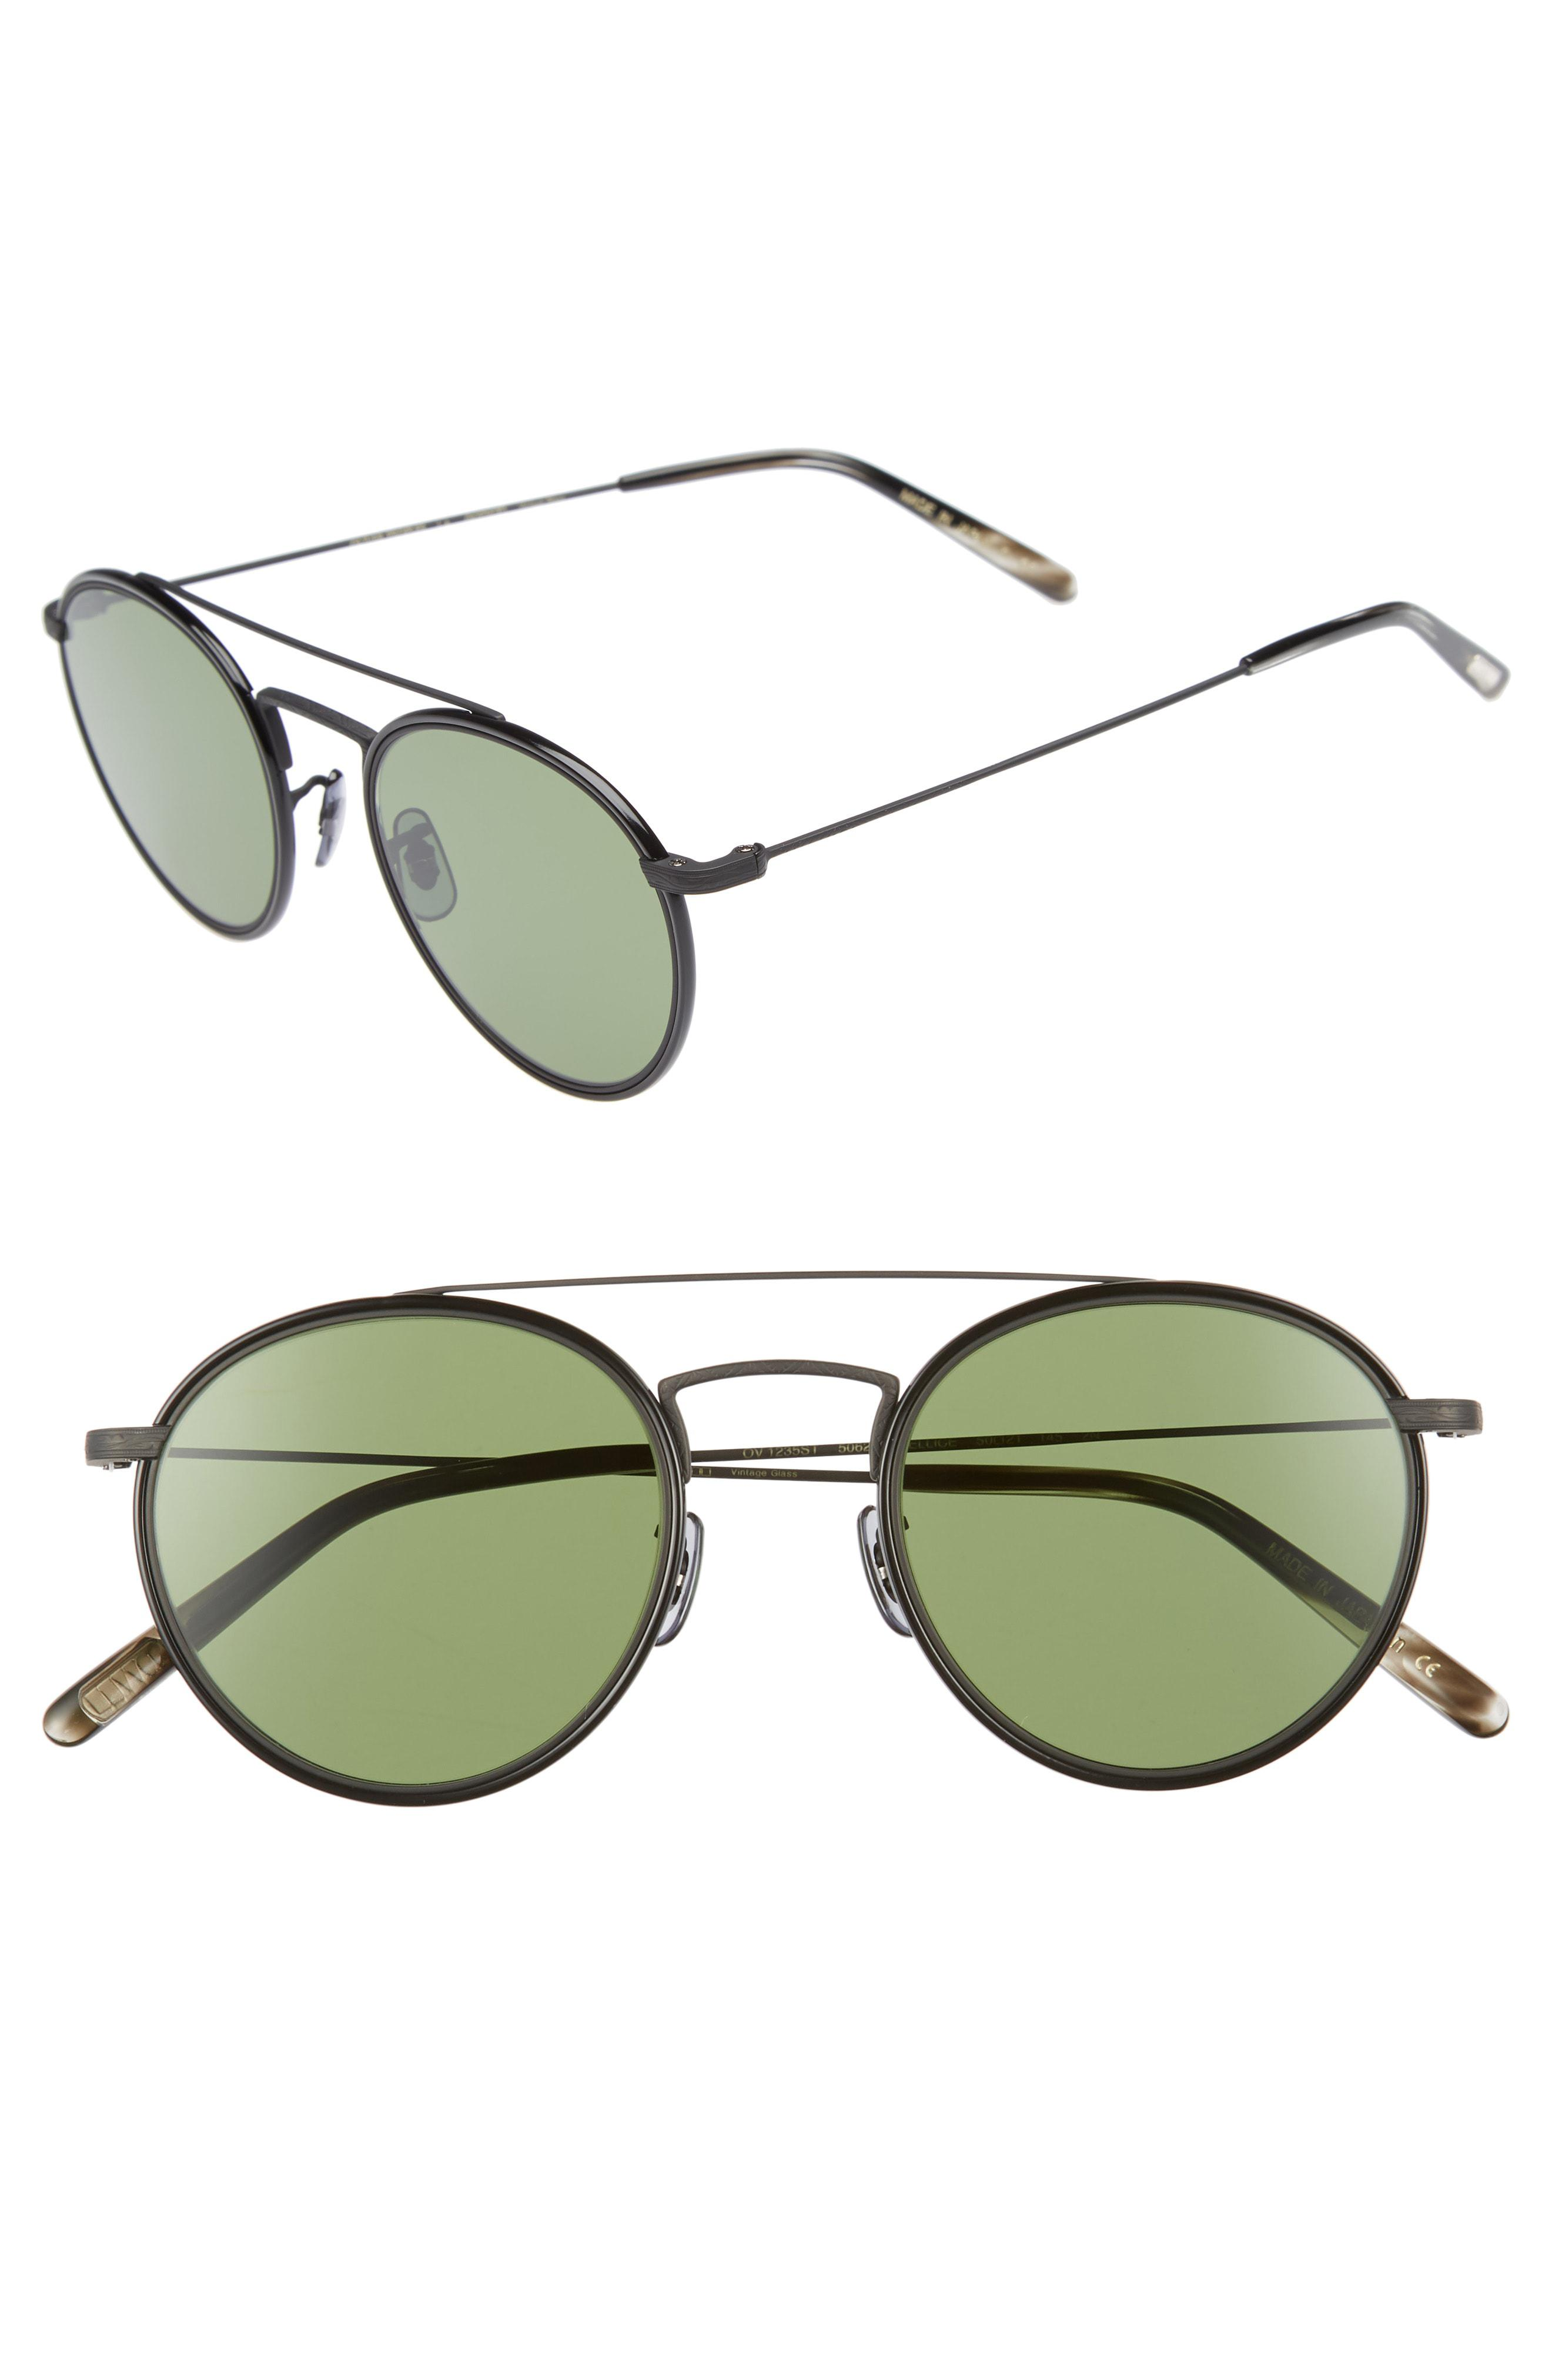 21b45777b73c Lyst - Oliver Peoples Ellice 50mm Round Sunglasses in Green for Men